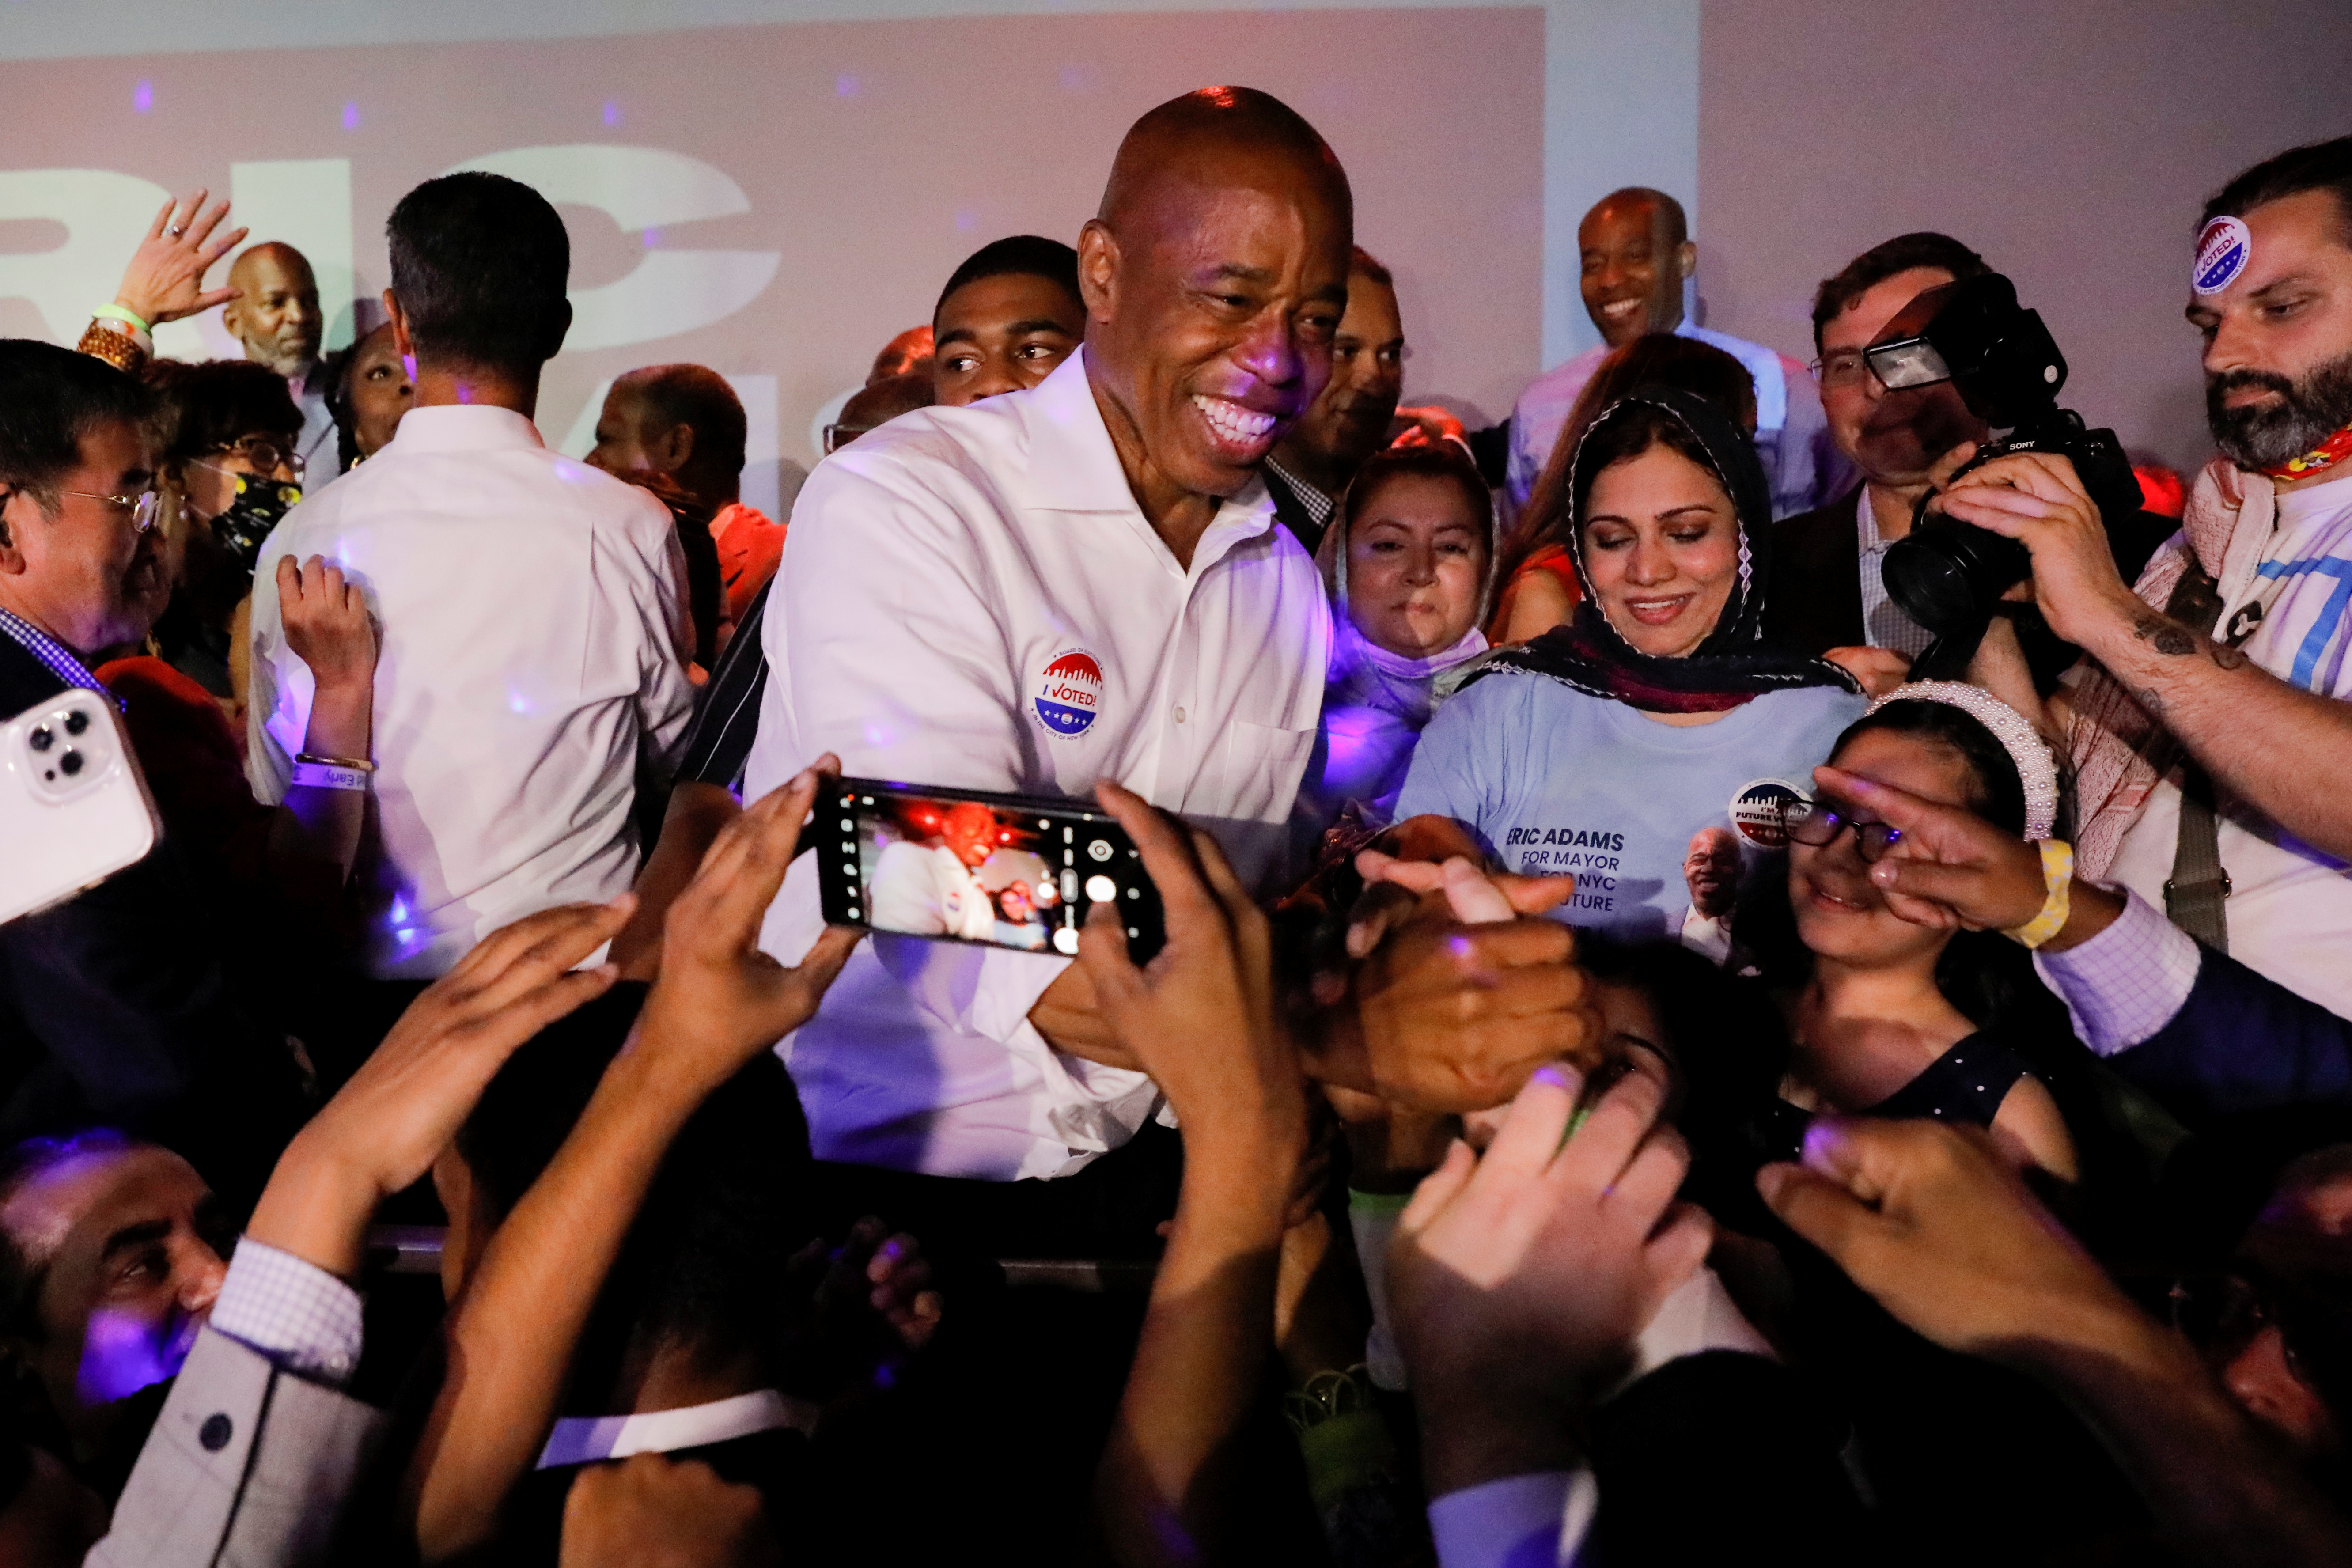 Eric Adams greets supporters at a New York City primary mayoral election night party in New York City, U.S., June 22, 2021. REUTERS/Andrew Kelly